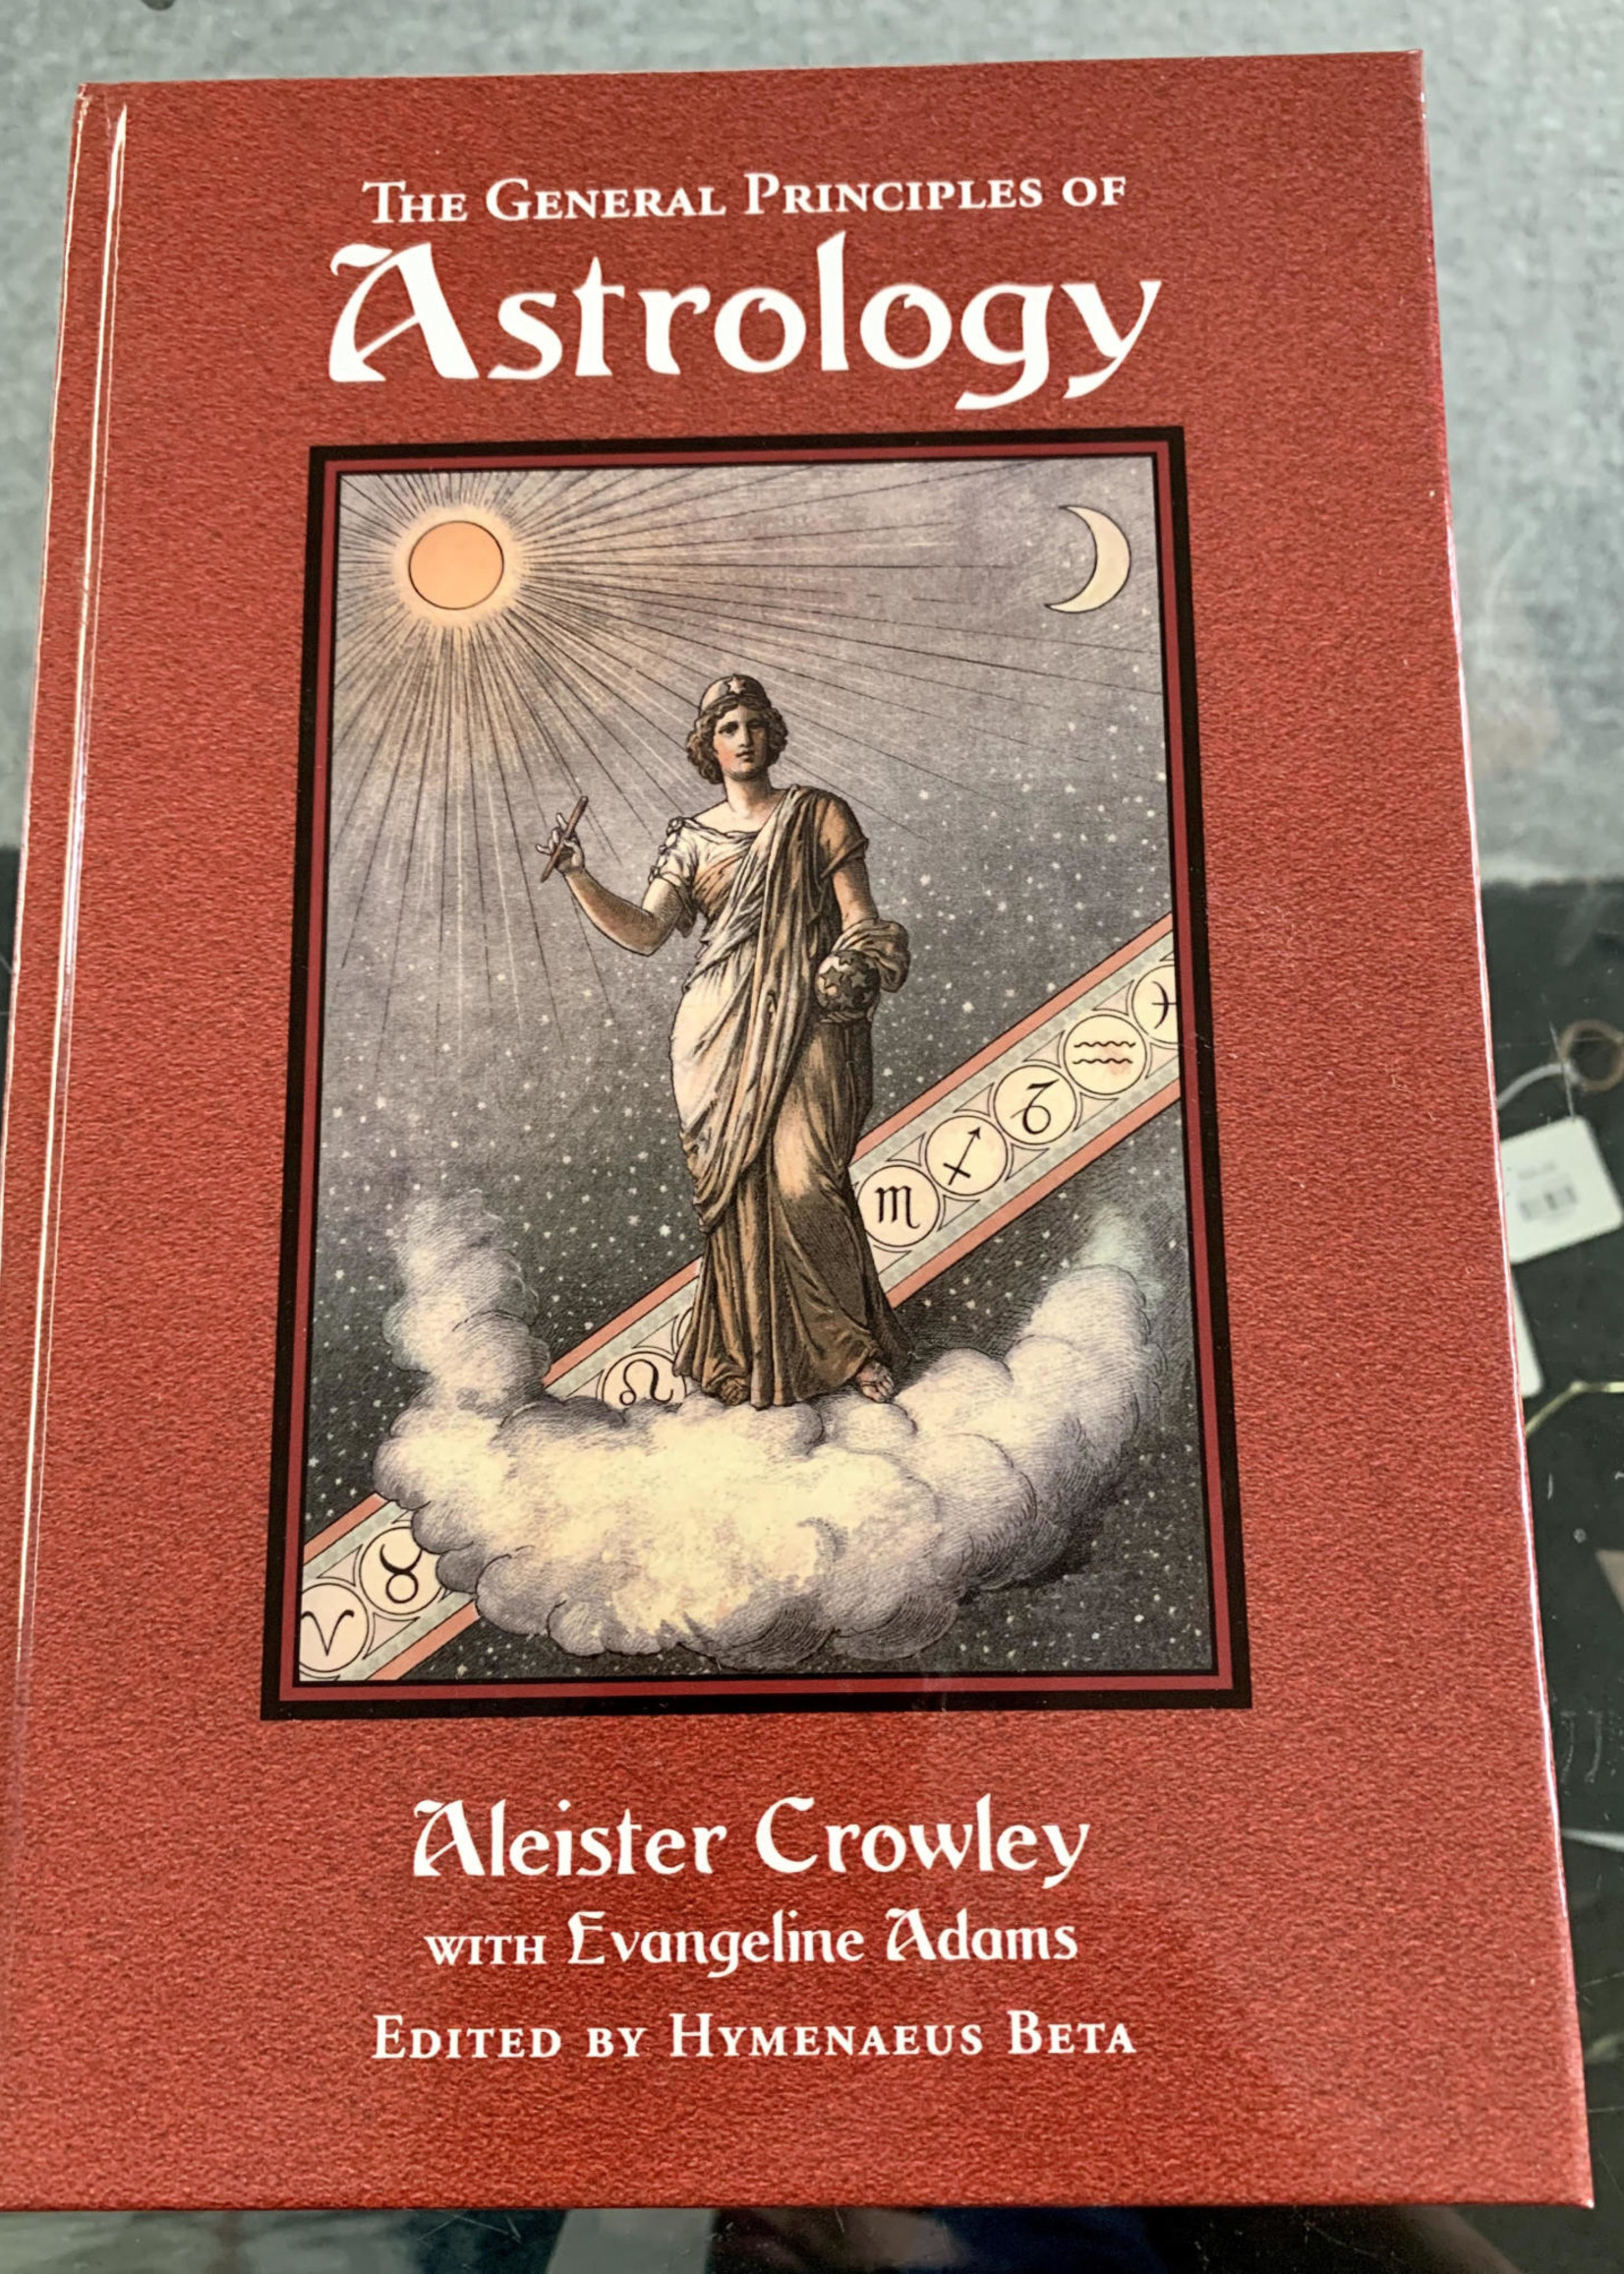 The General Principles of Astrology -  Aleister Crowley